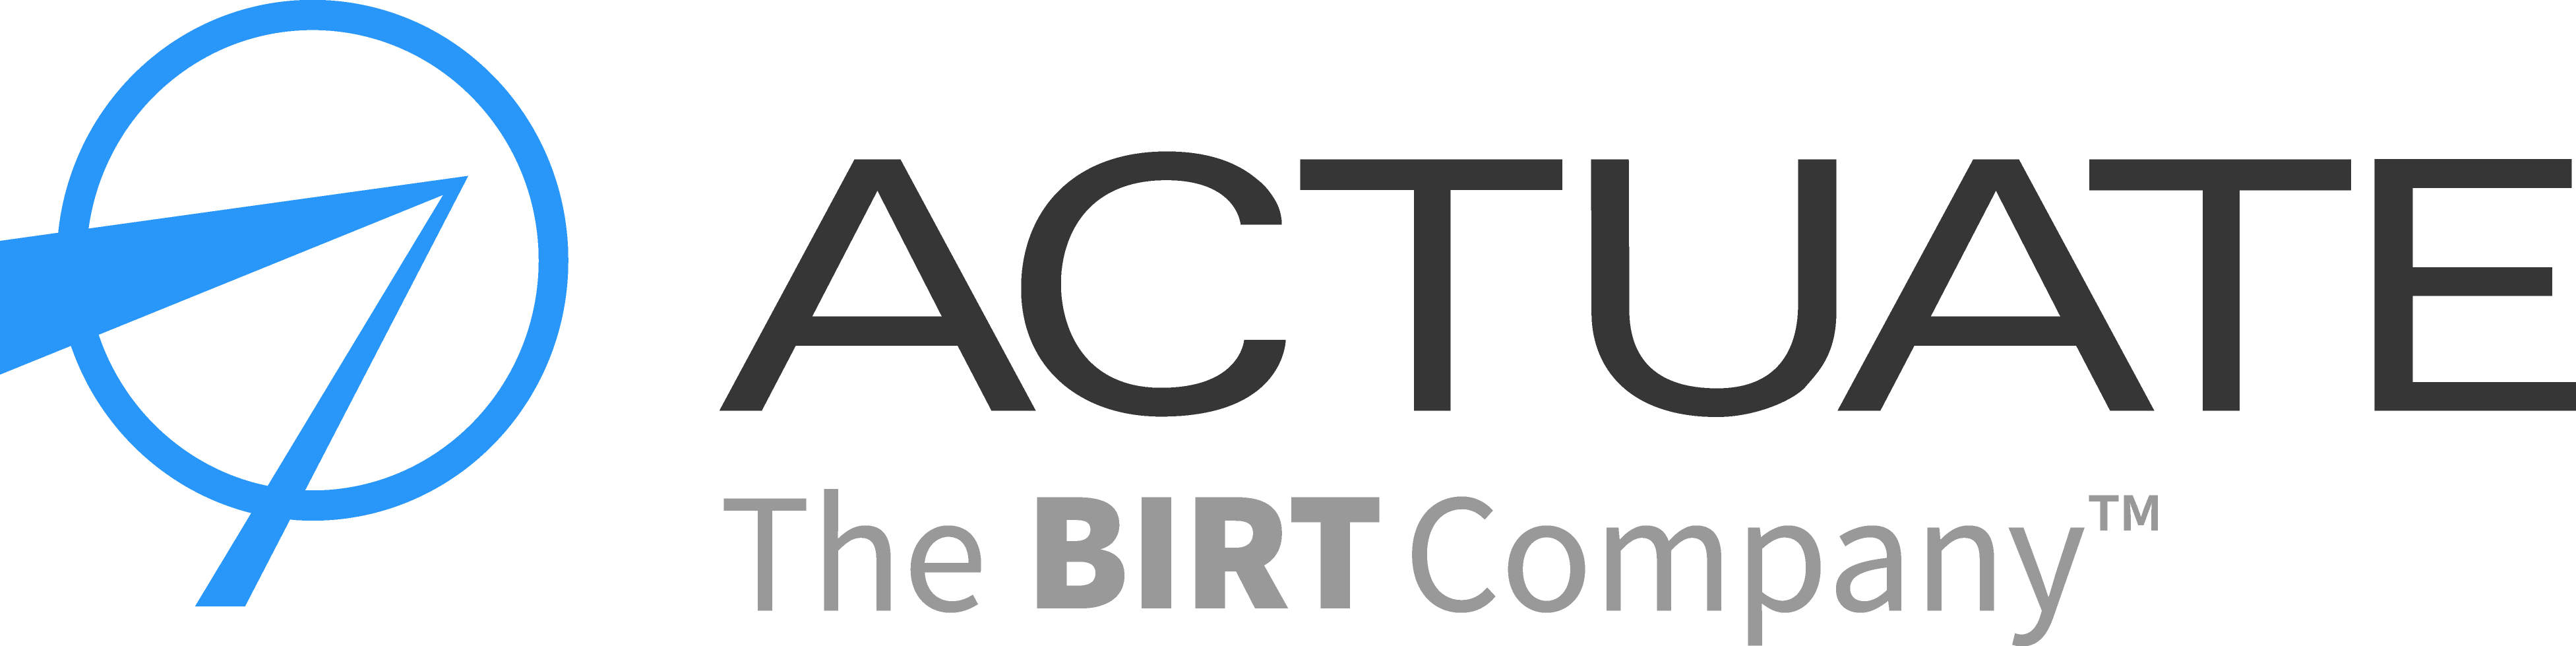 Actuate Corporation Logo